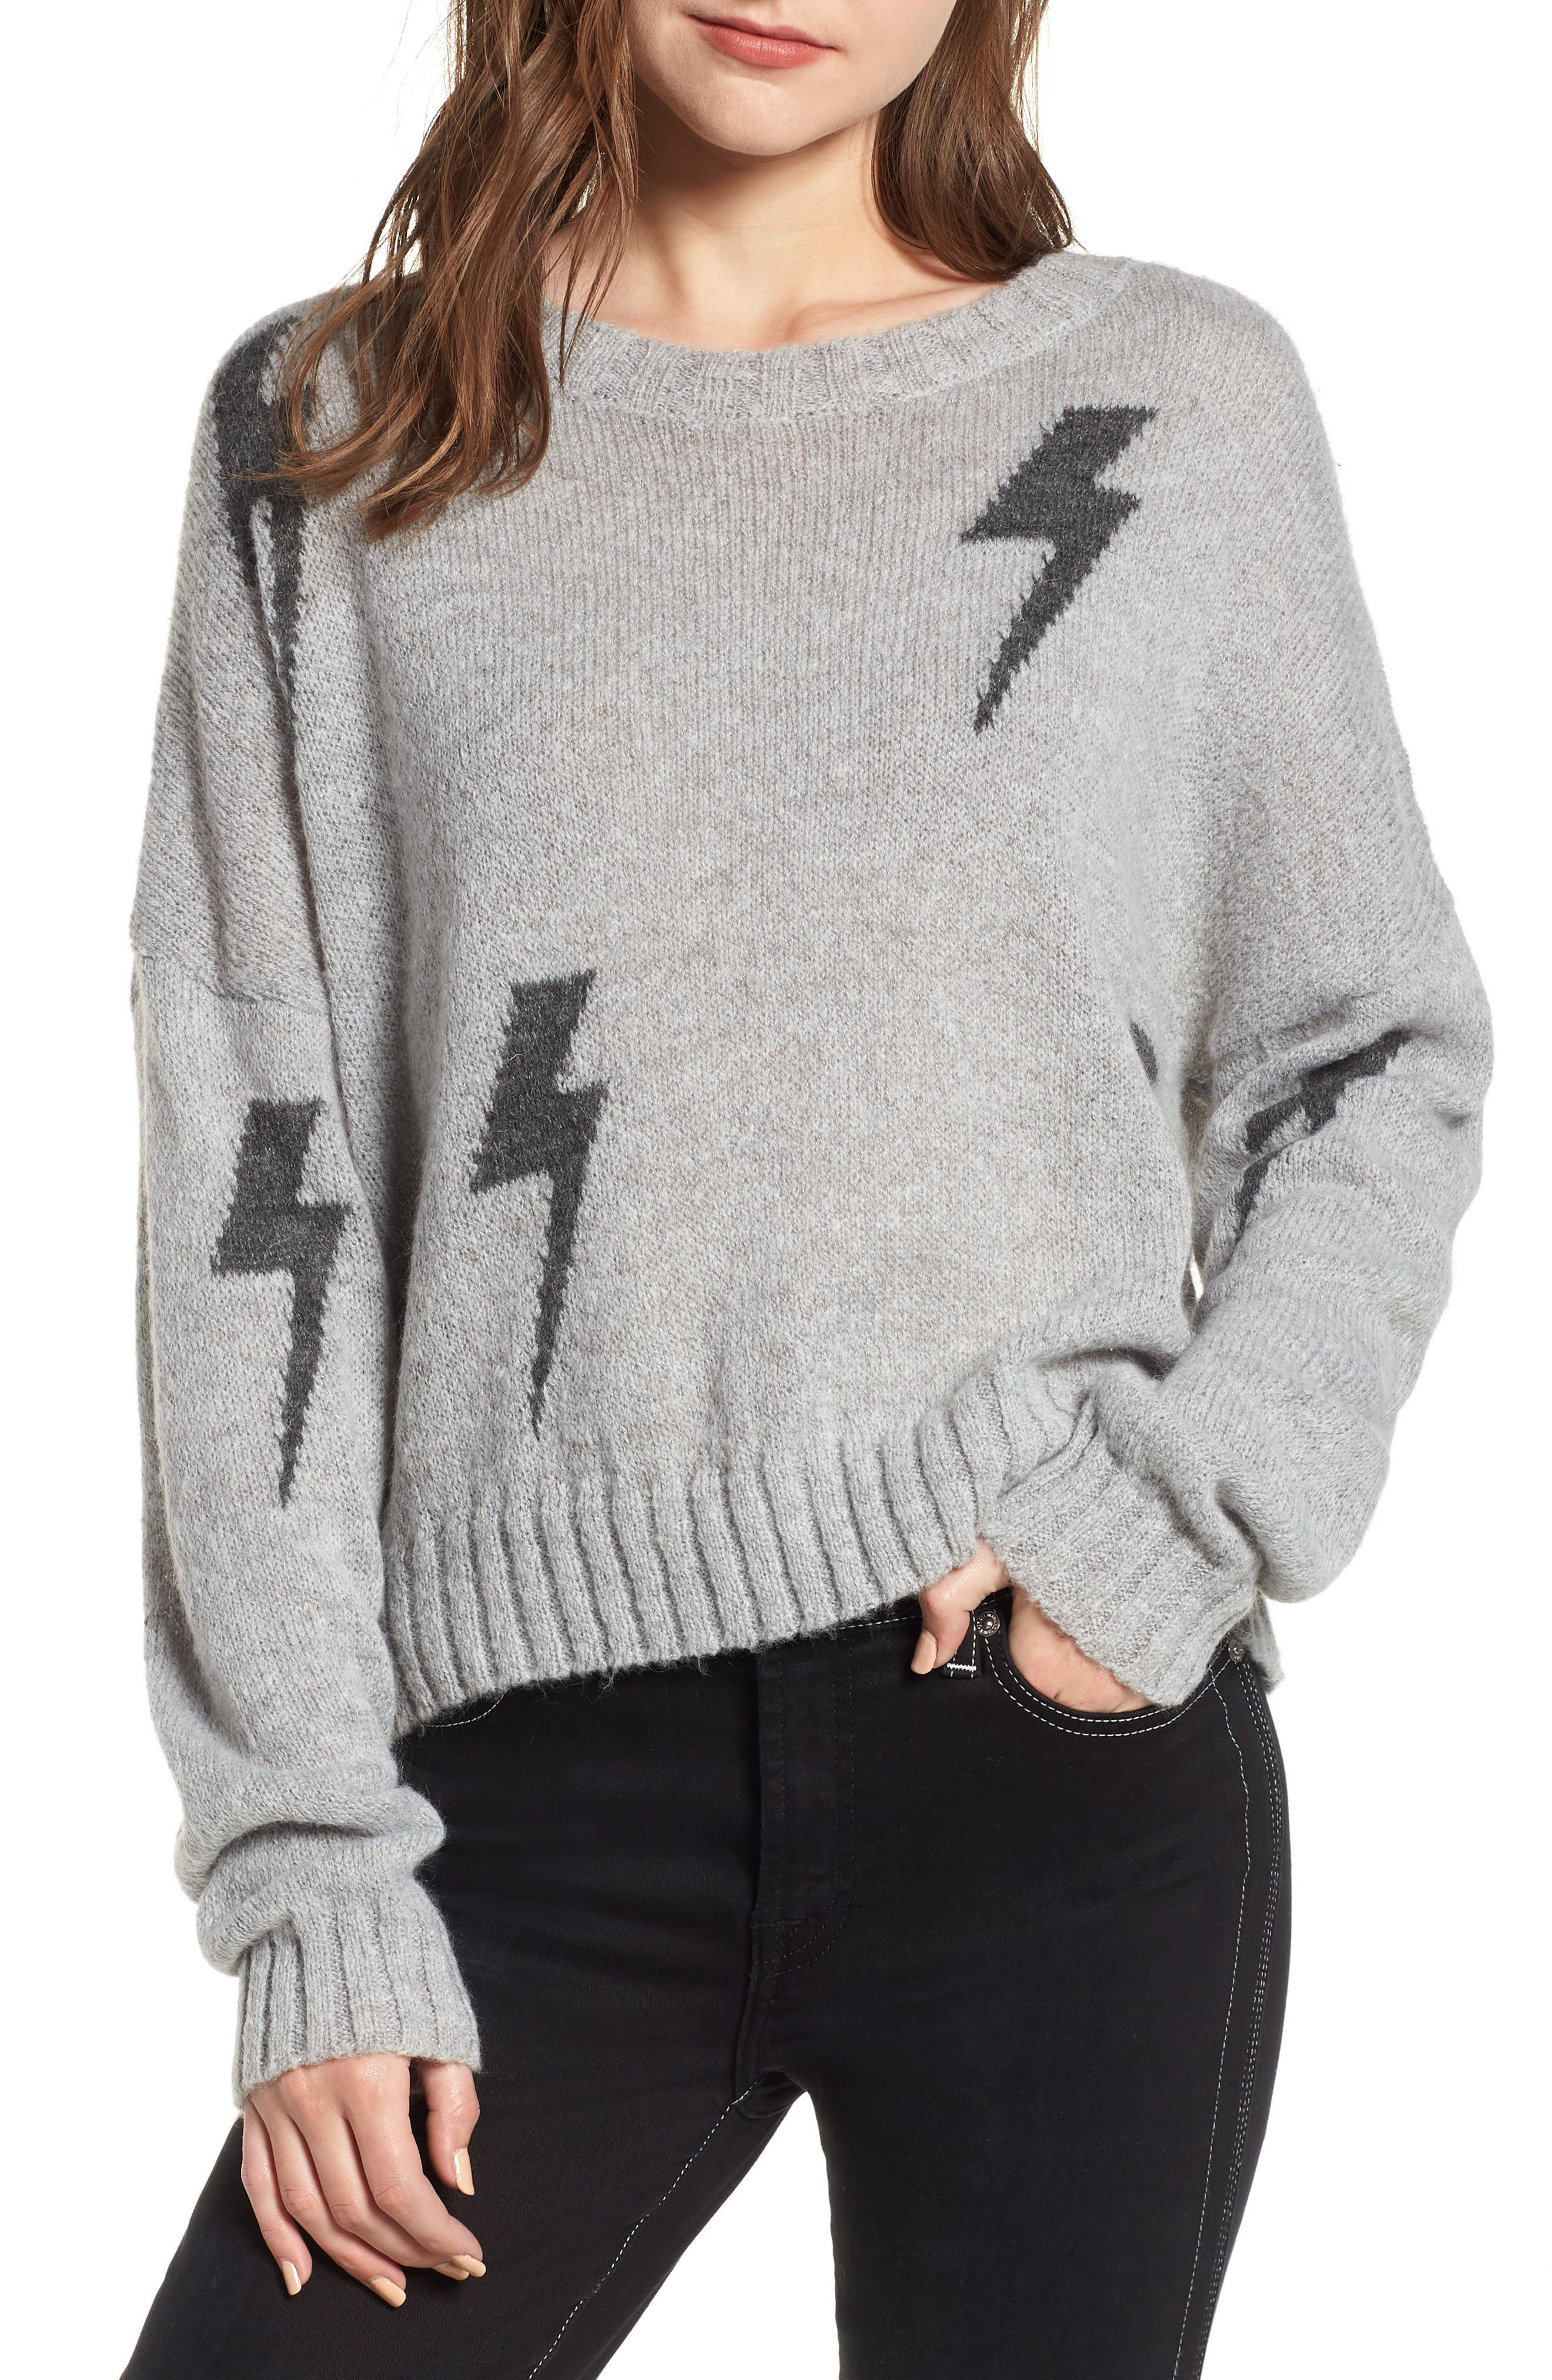 Perci Sweater,                         Main,                         color, GREY/CHARCOAL LIGHTNING